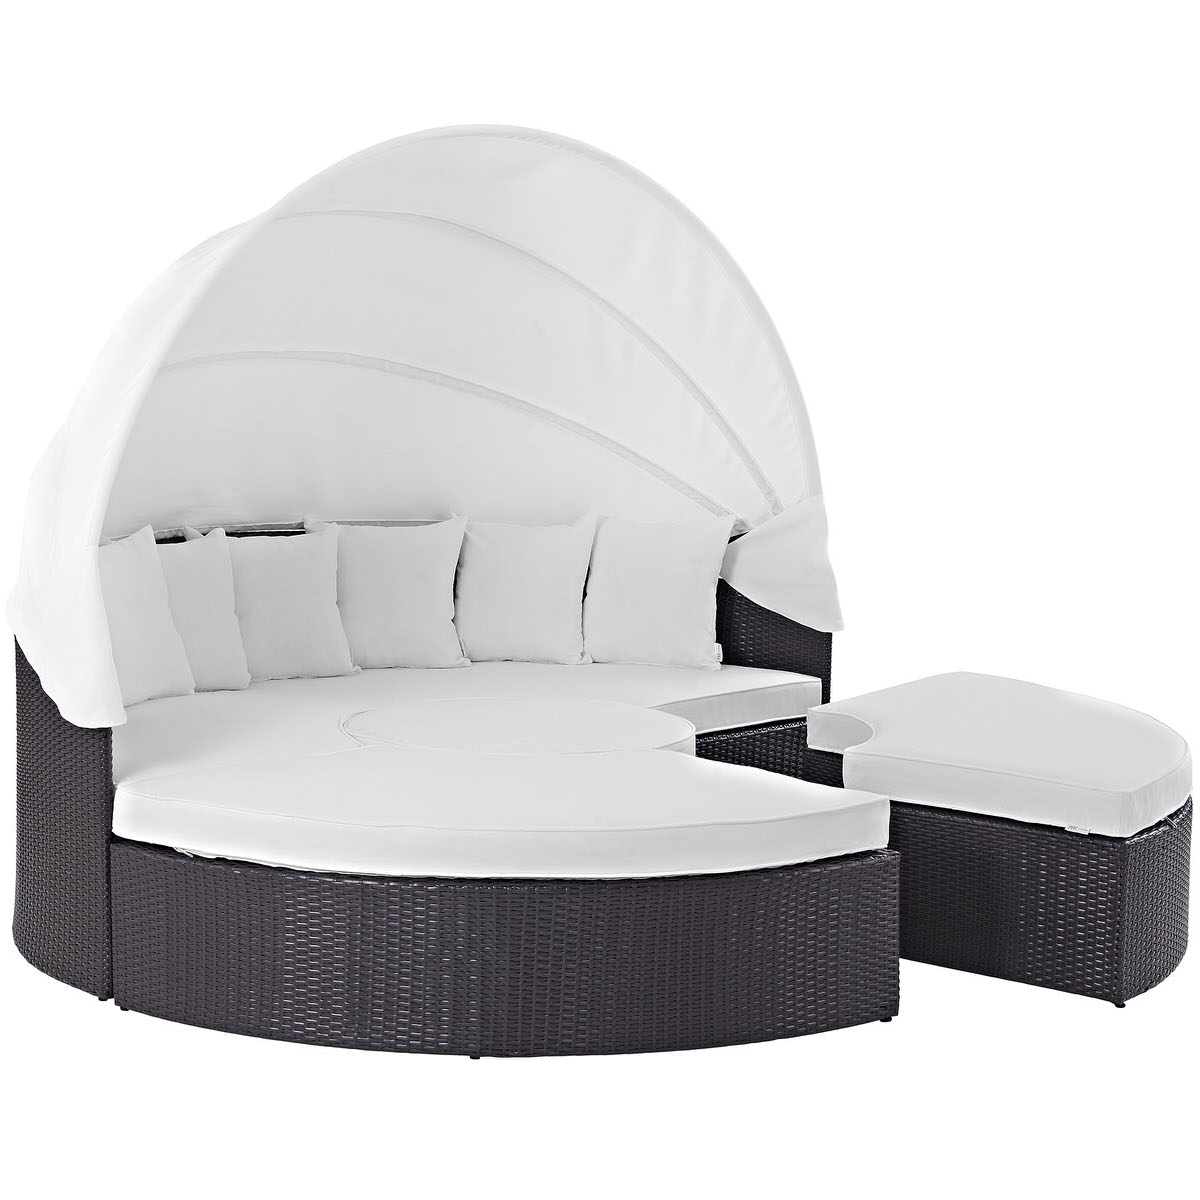 Convene Canopy Outdoor Patio Daybed Espresso White by Modern ...